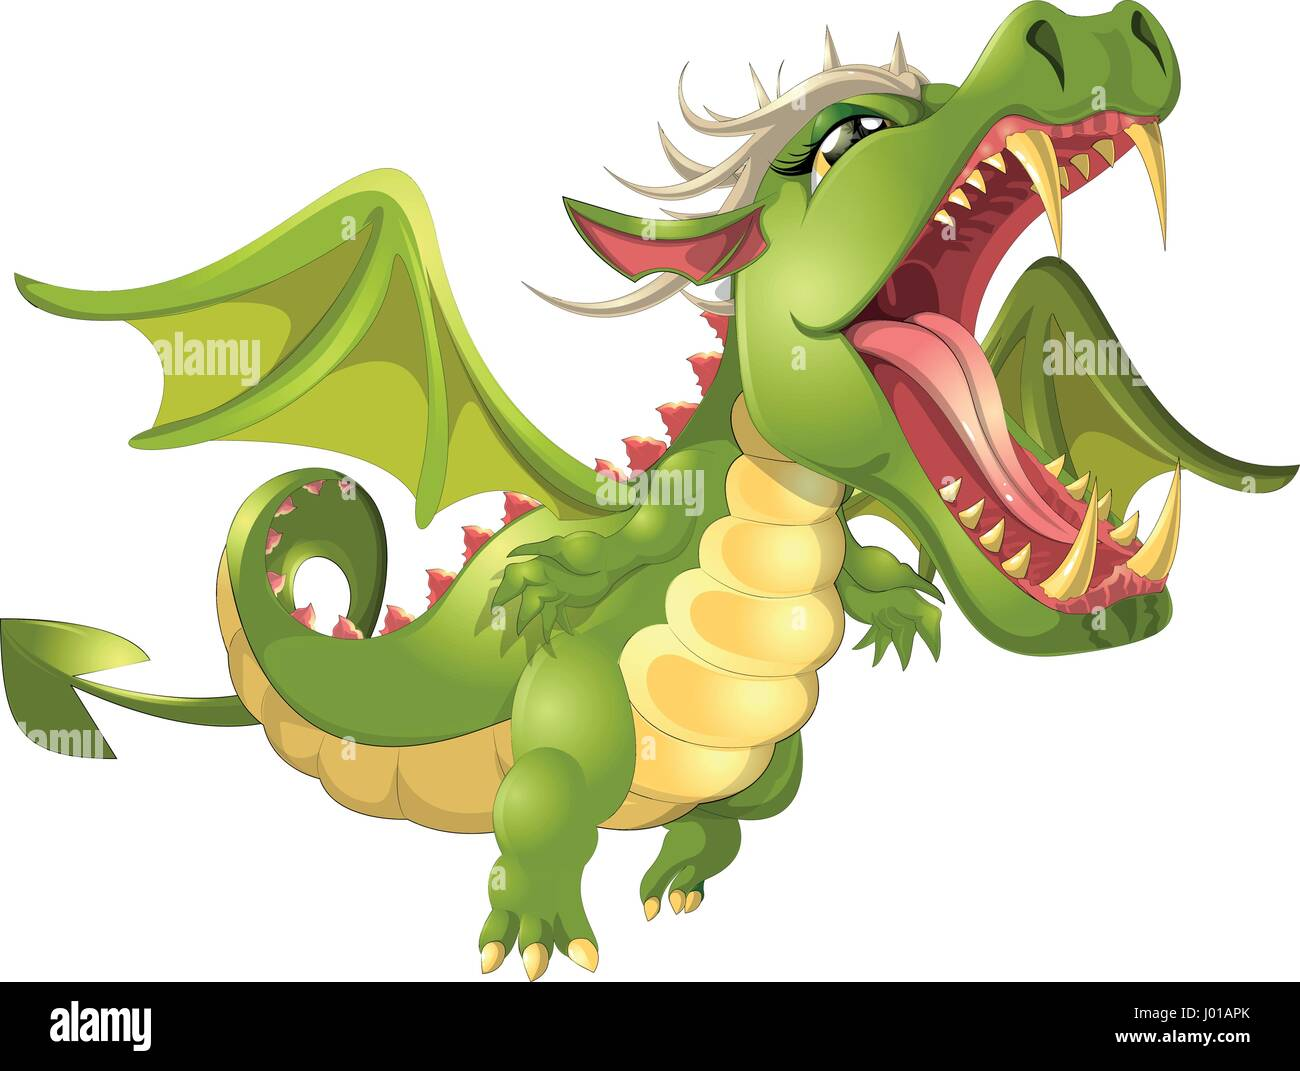 How to breed heraldic dragon - Angry Dragon Cartoon Stock Image